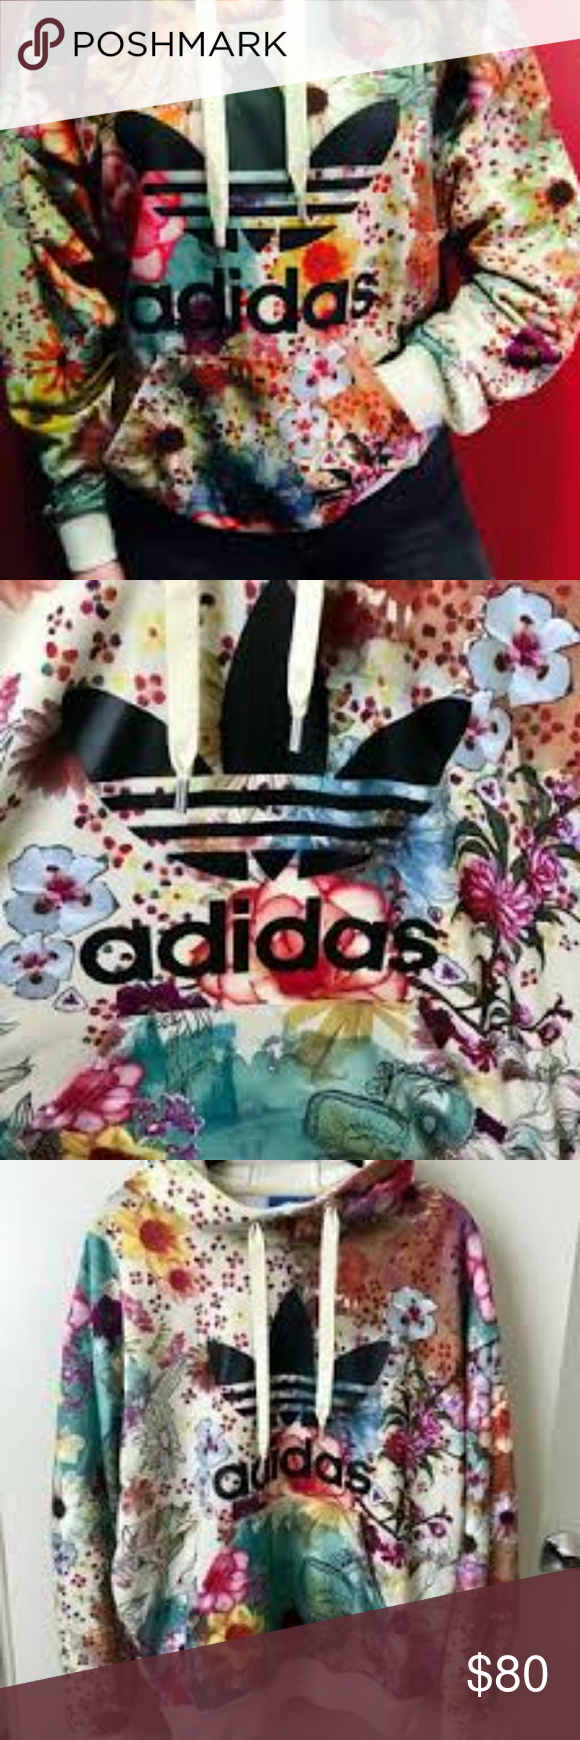 1bb8e2582758 RARE Original Adidas Farm Confete Hoodie This Trefoil Hoodie features a  dreamy floral print inspired by